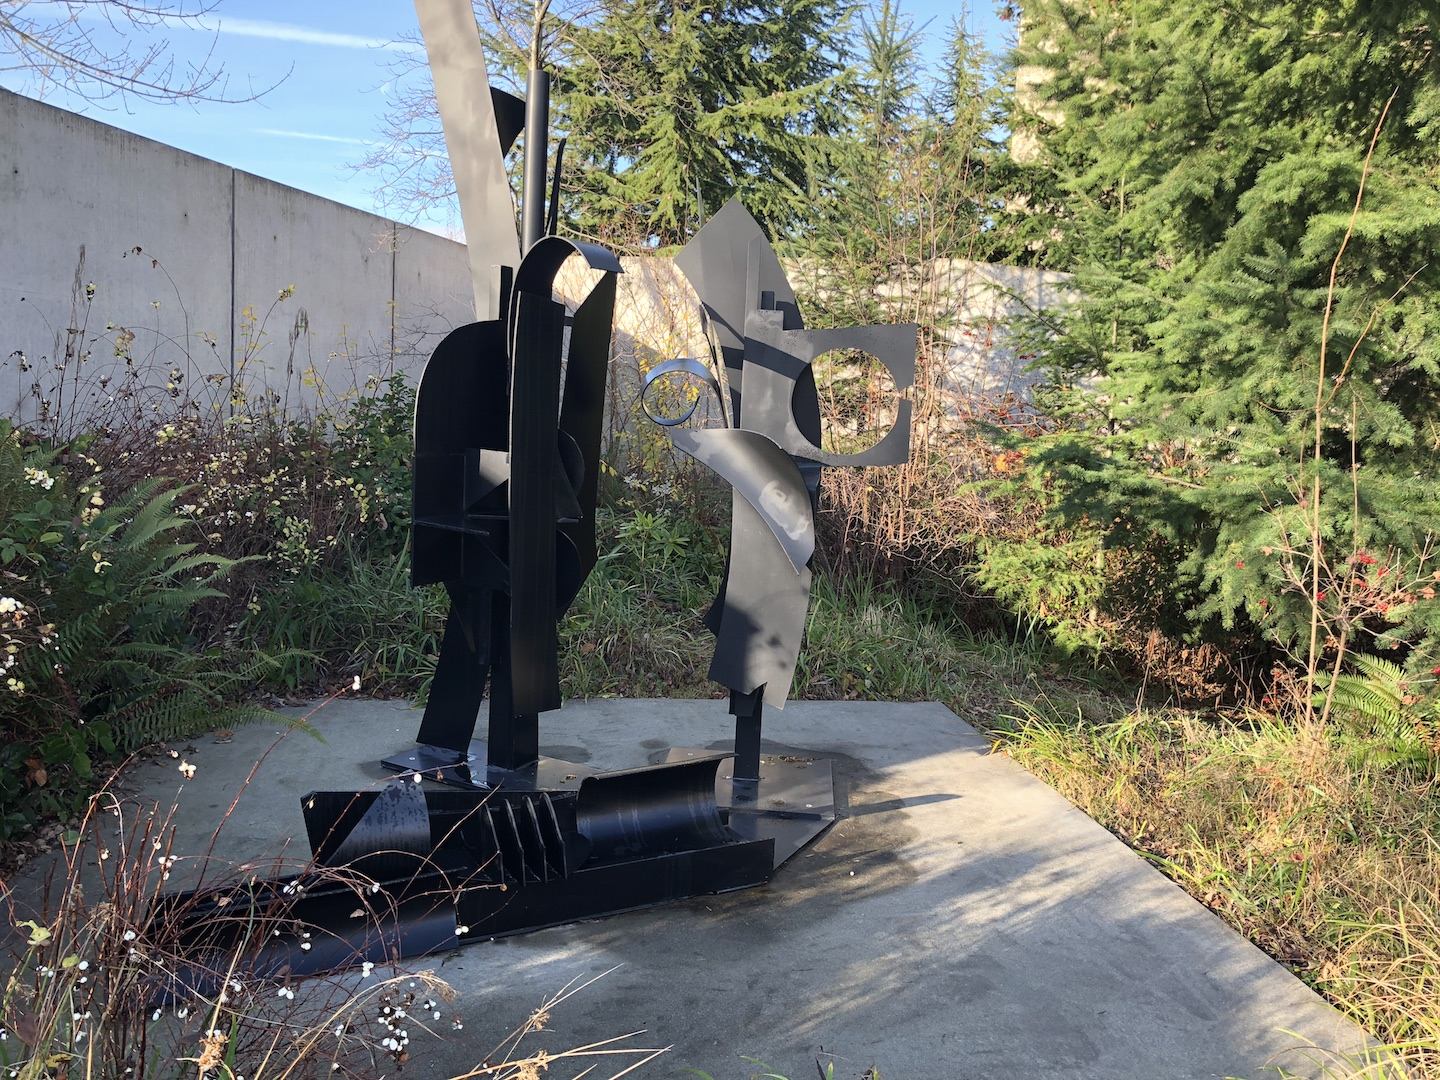 Olympic Sculpture Park - photo by Dennis Spielman